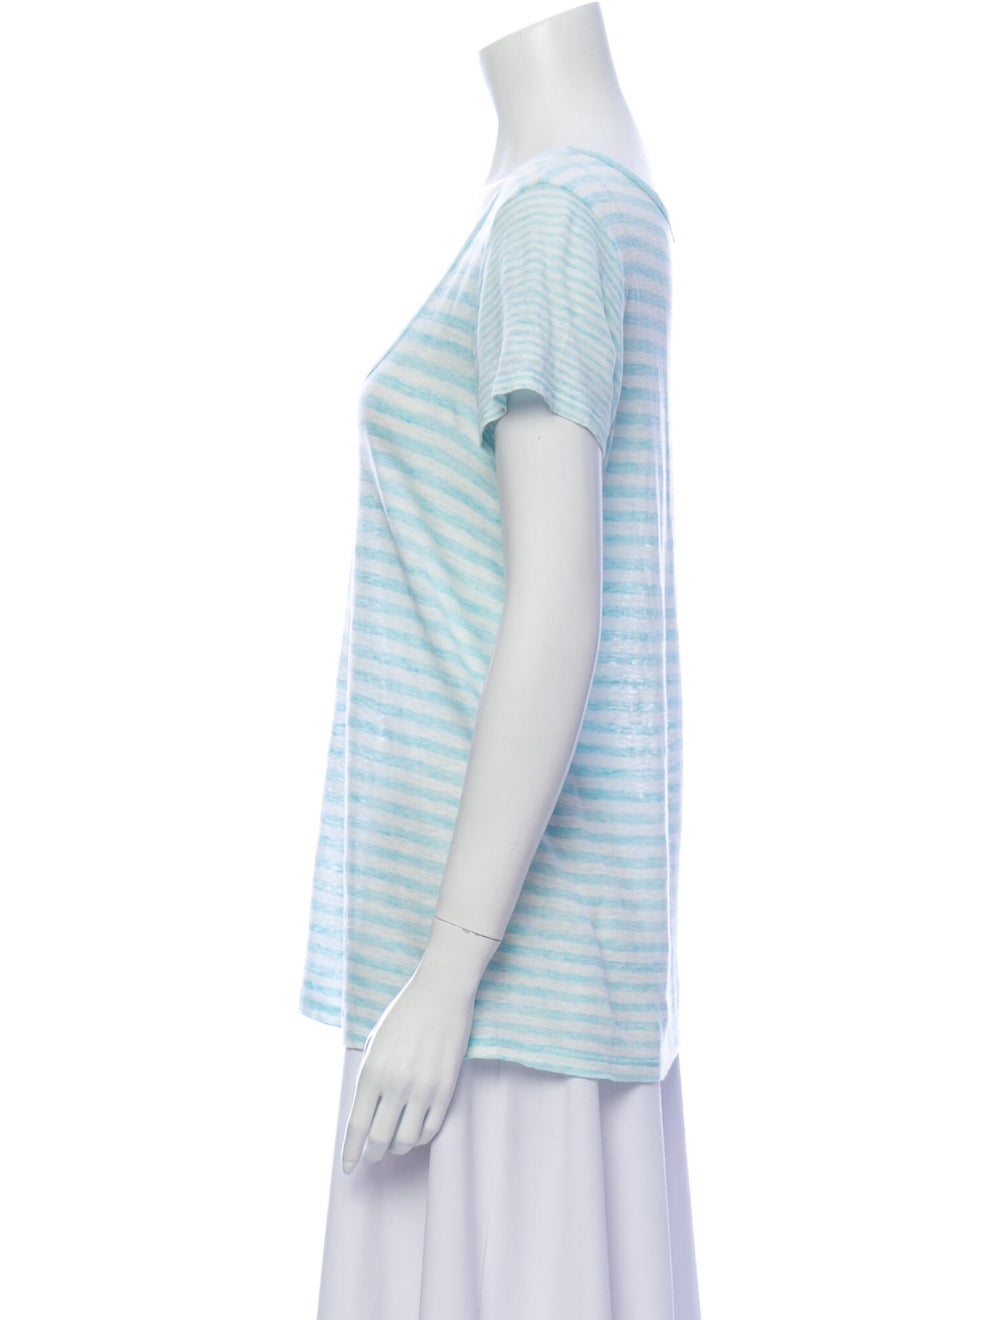 Theory Linen Striped T-Shirt Blue - image 2